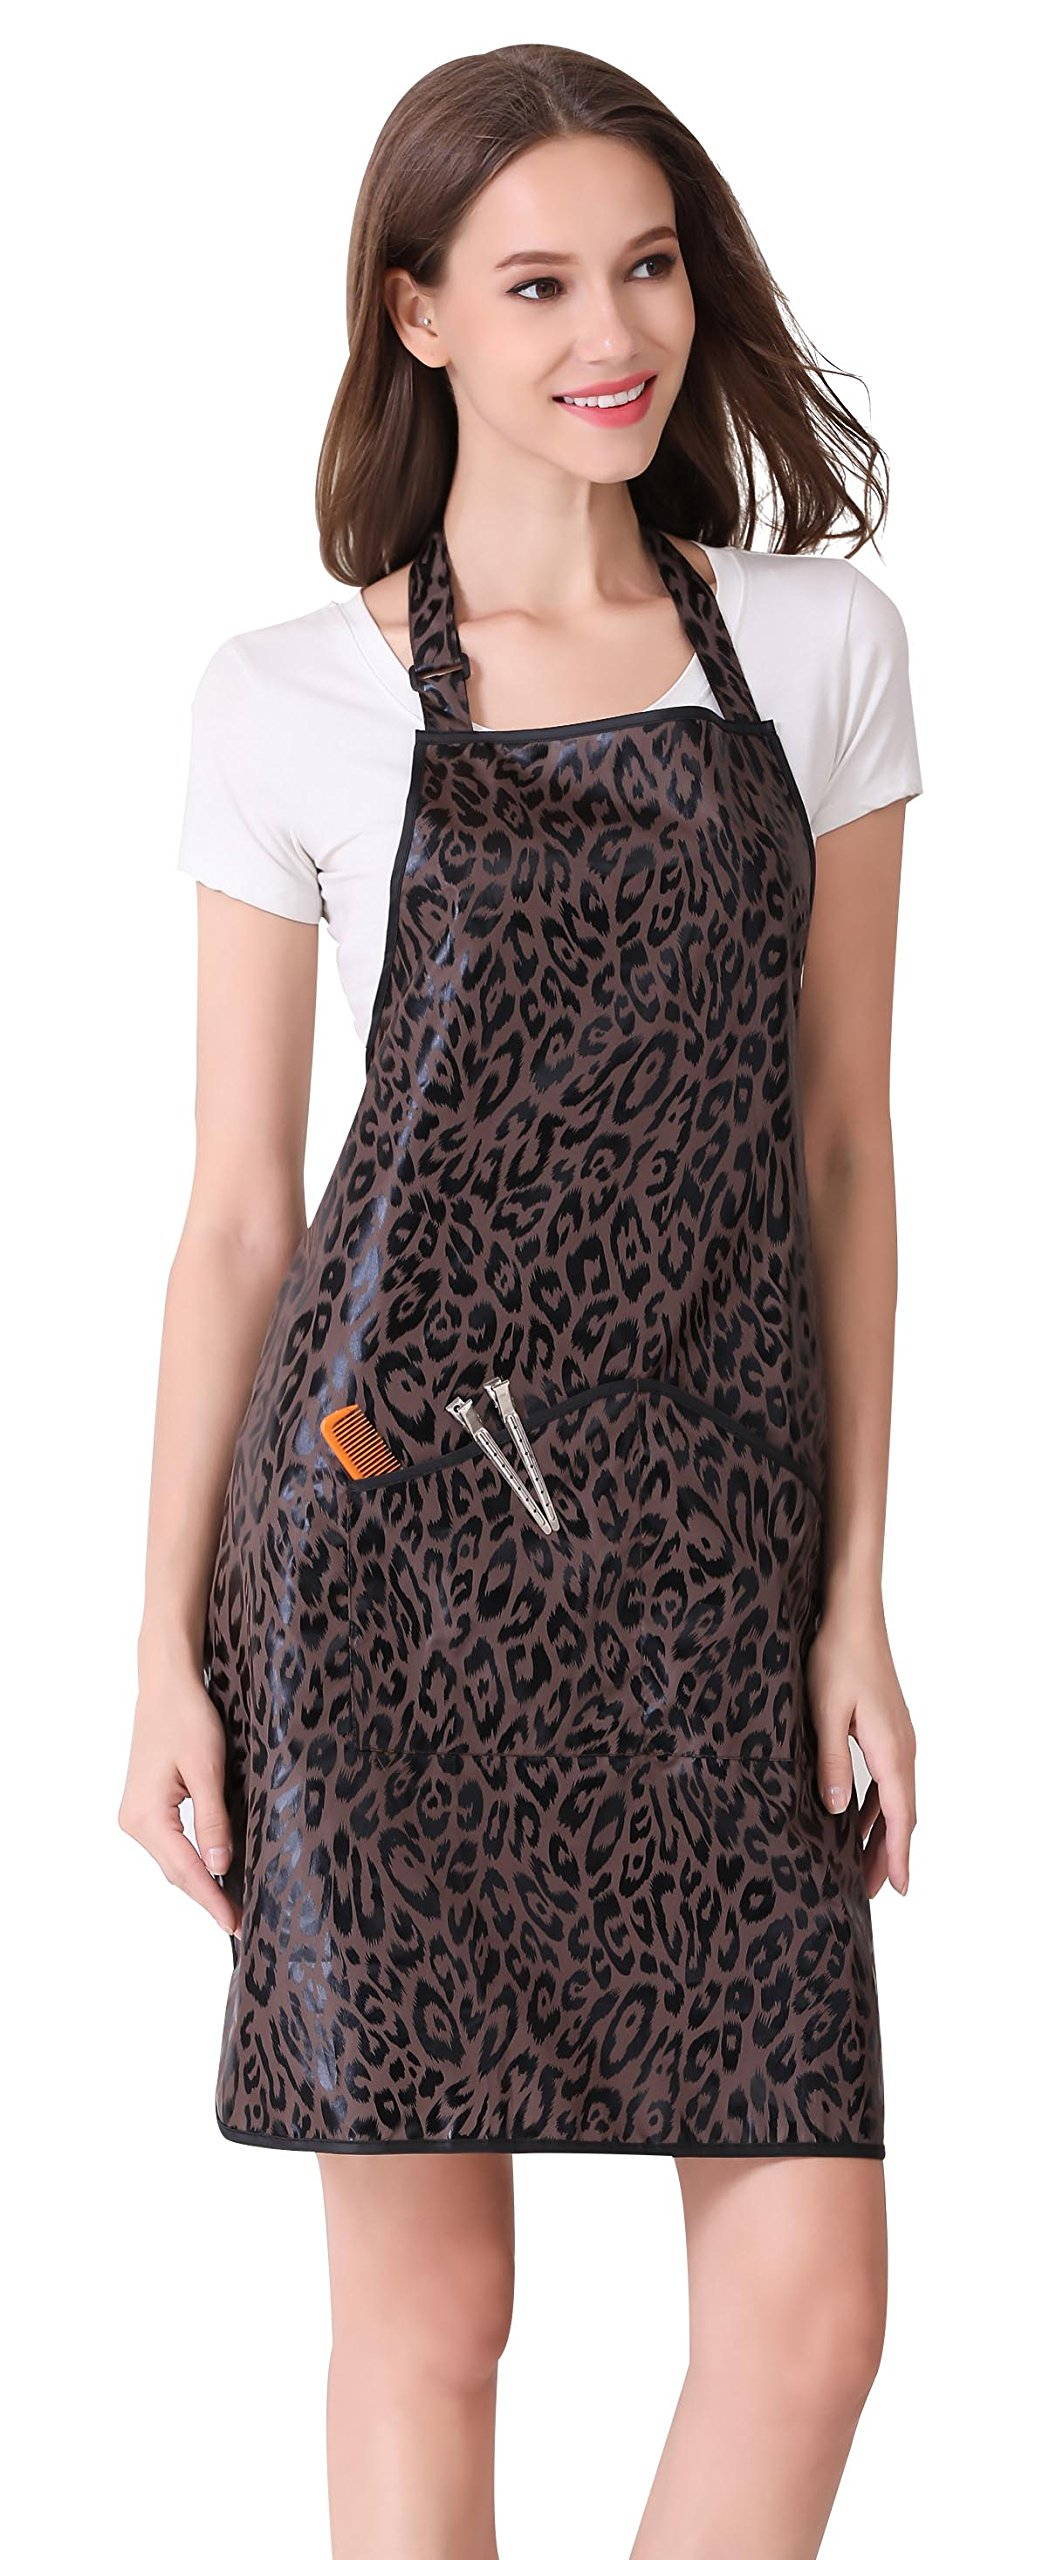 Hair Stylist Apron for Salon Hairdresser, Barber Haircut Styling Apron With Pockets-Leopard Print by Perfehair (Image #5)